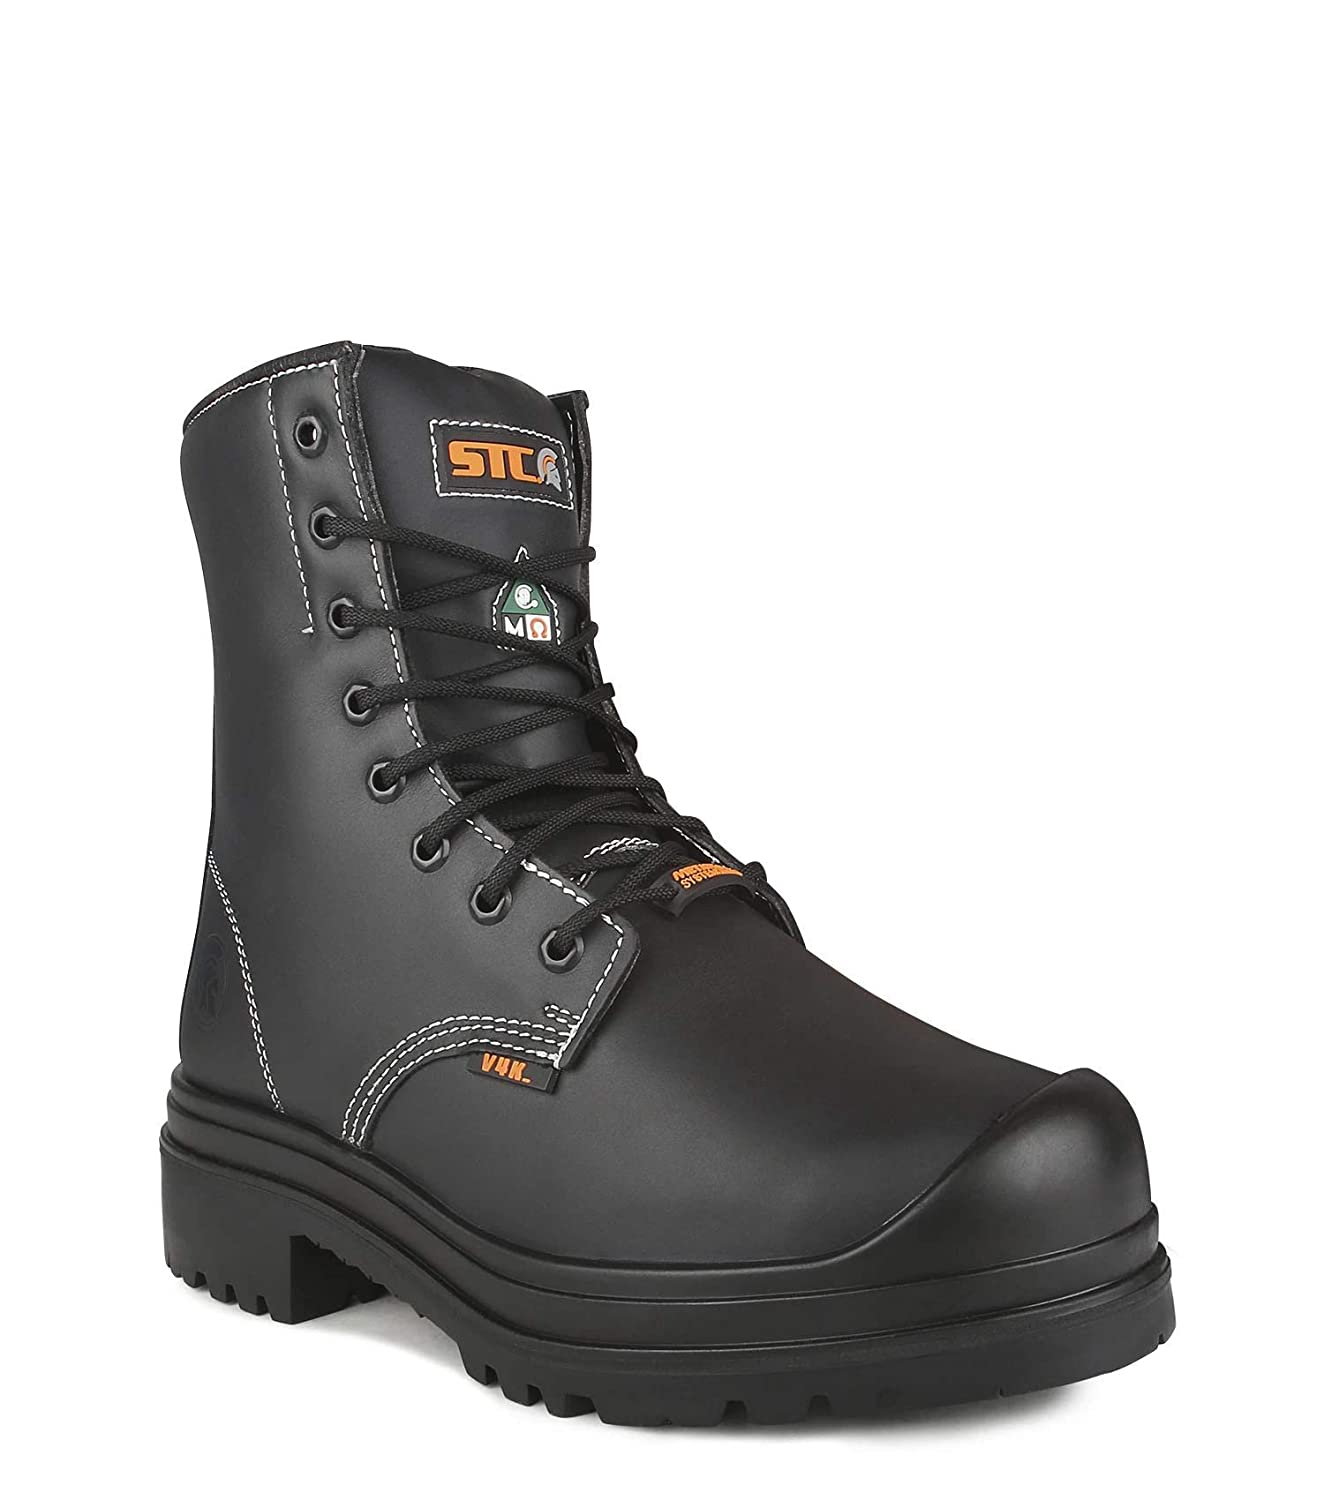 STC 22002-11 Work Boots, 8 in, Steel